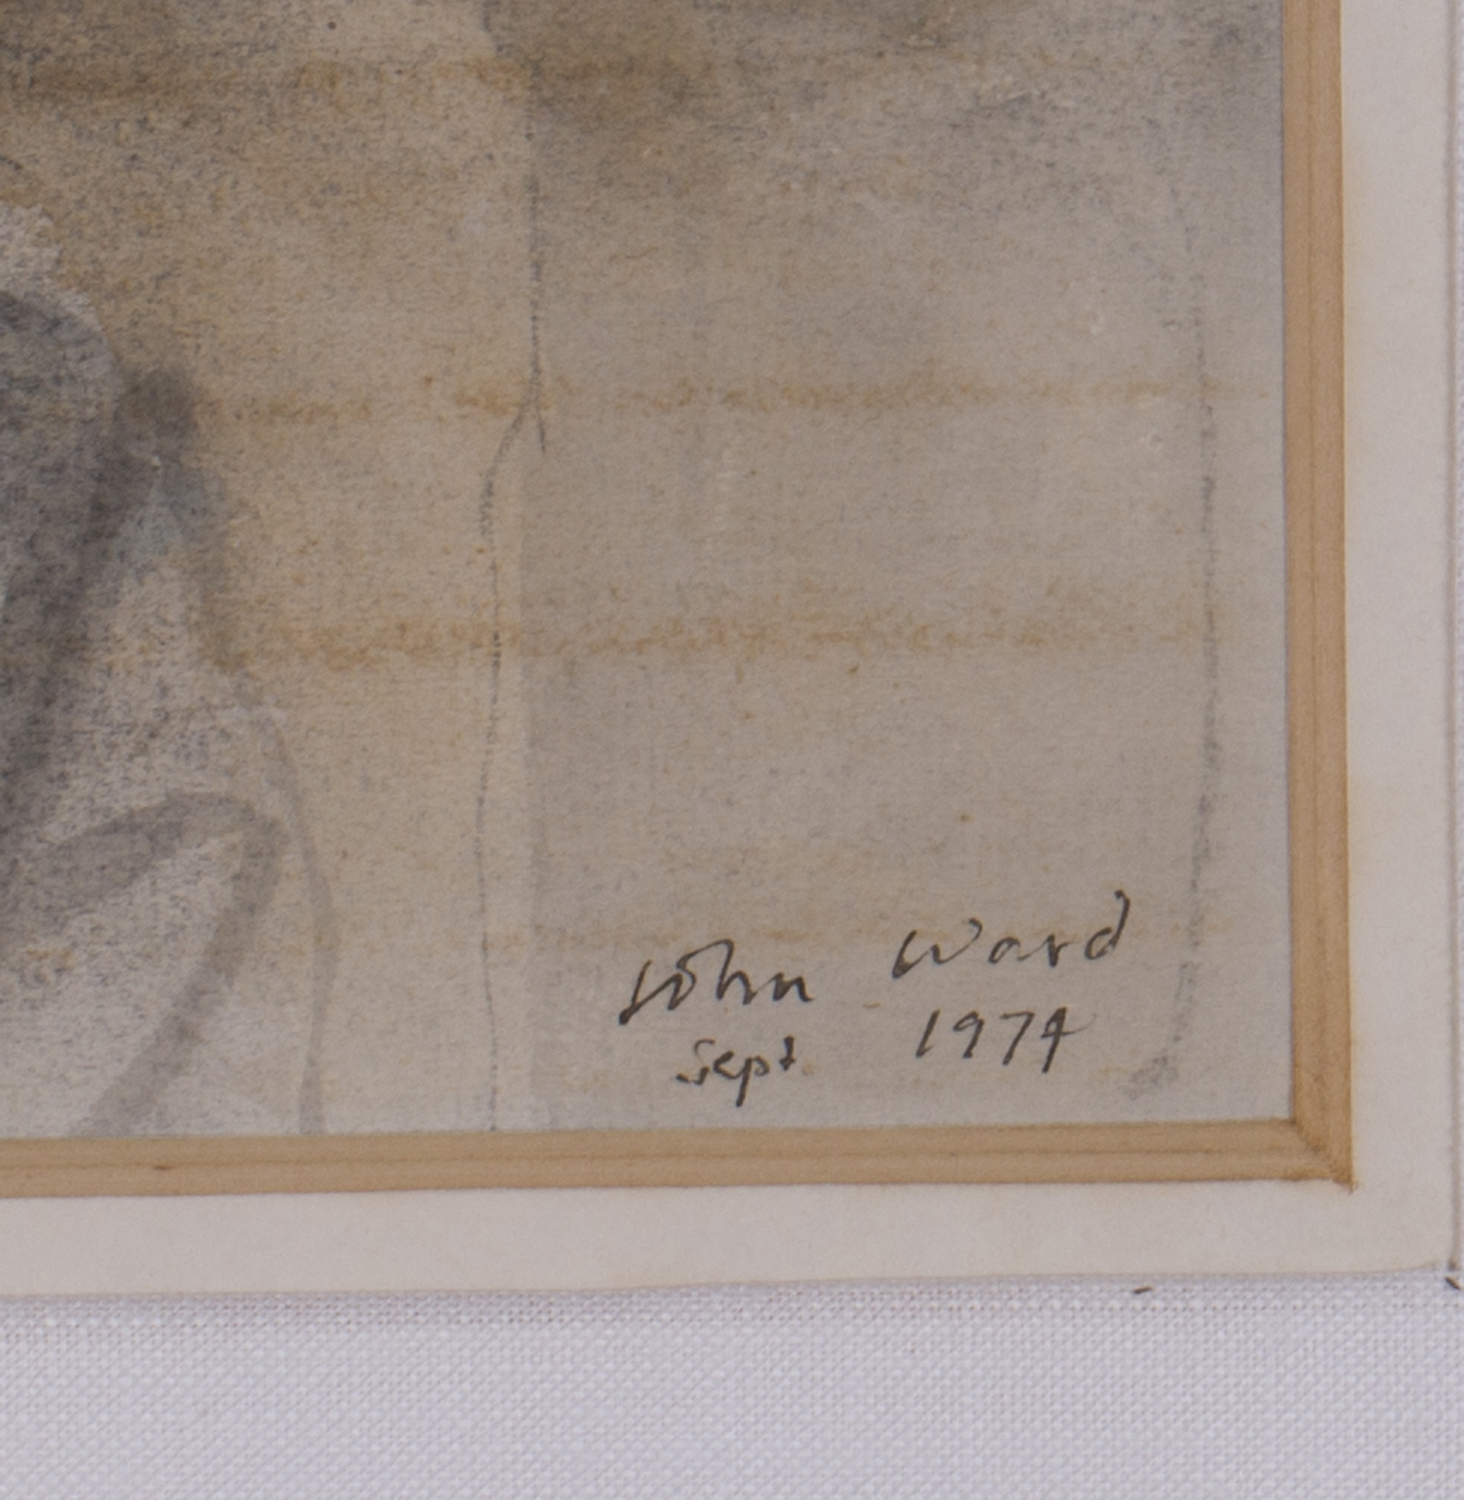 Lot 55 - John Stanton Ward - Portrait of a Girl, watercolour with ink, signed and dated 1974, 21.5cm x